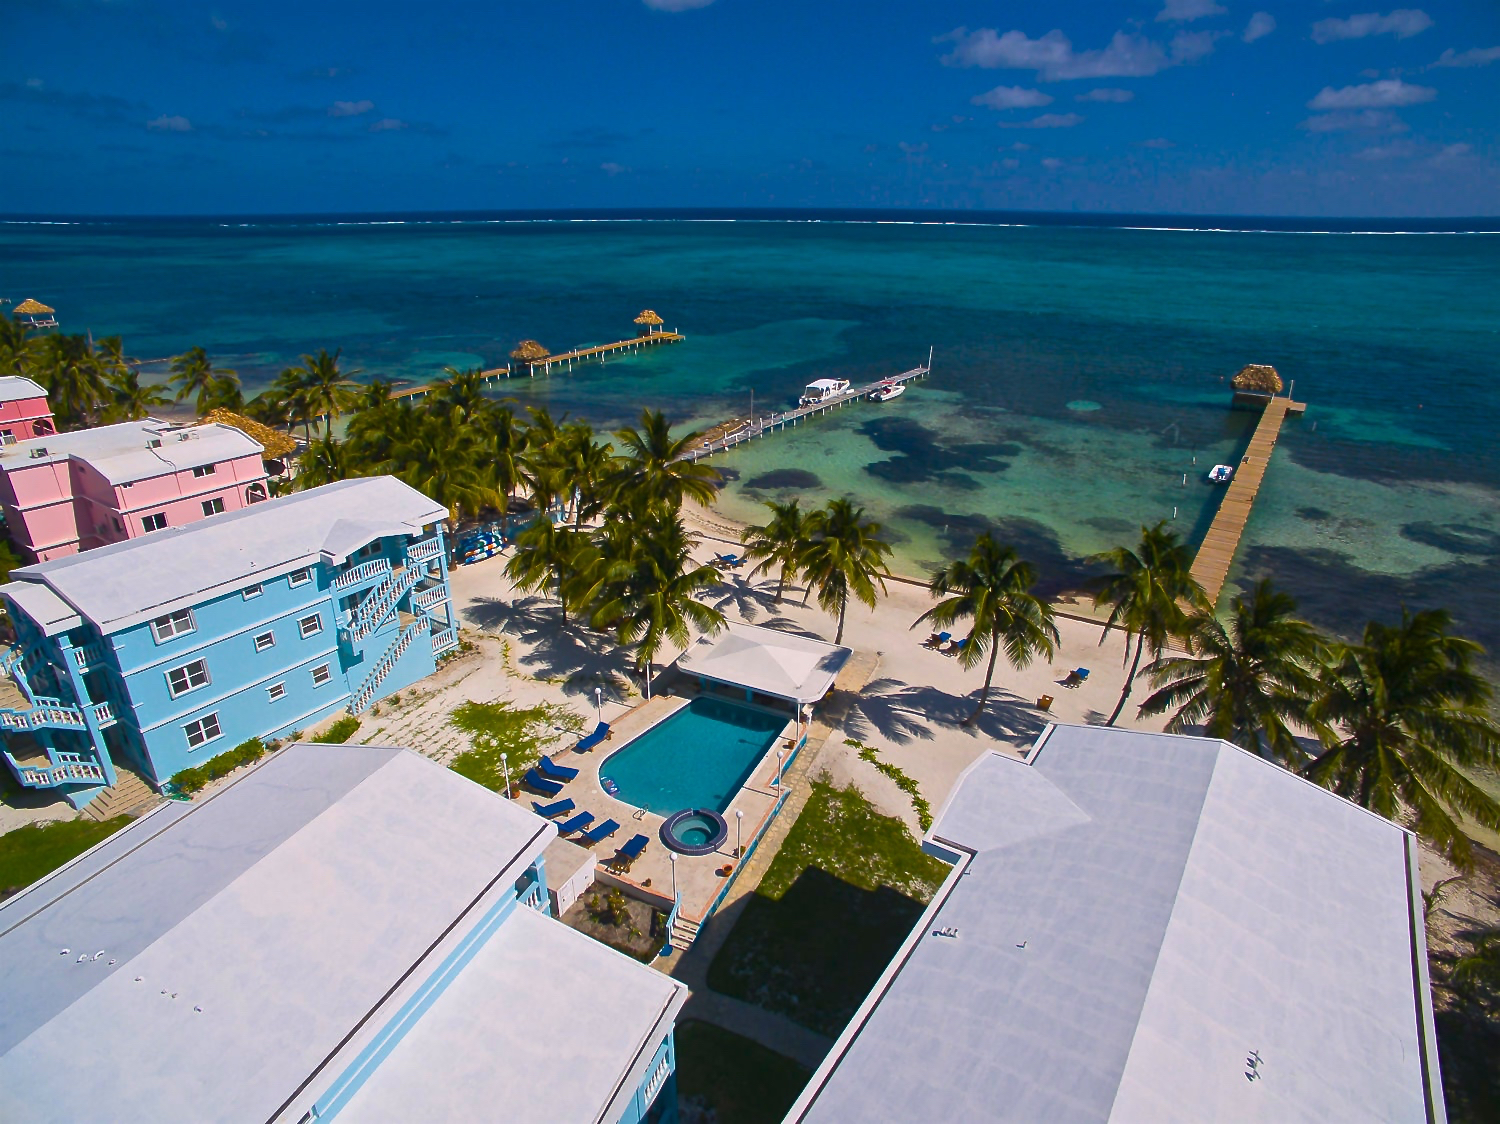 2017 Sunset Beach Resort Belize, A1 Ambergris Caye www.SunsetBeachResortBelize.com - 72